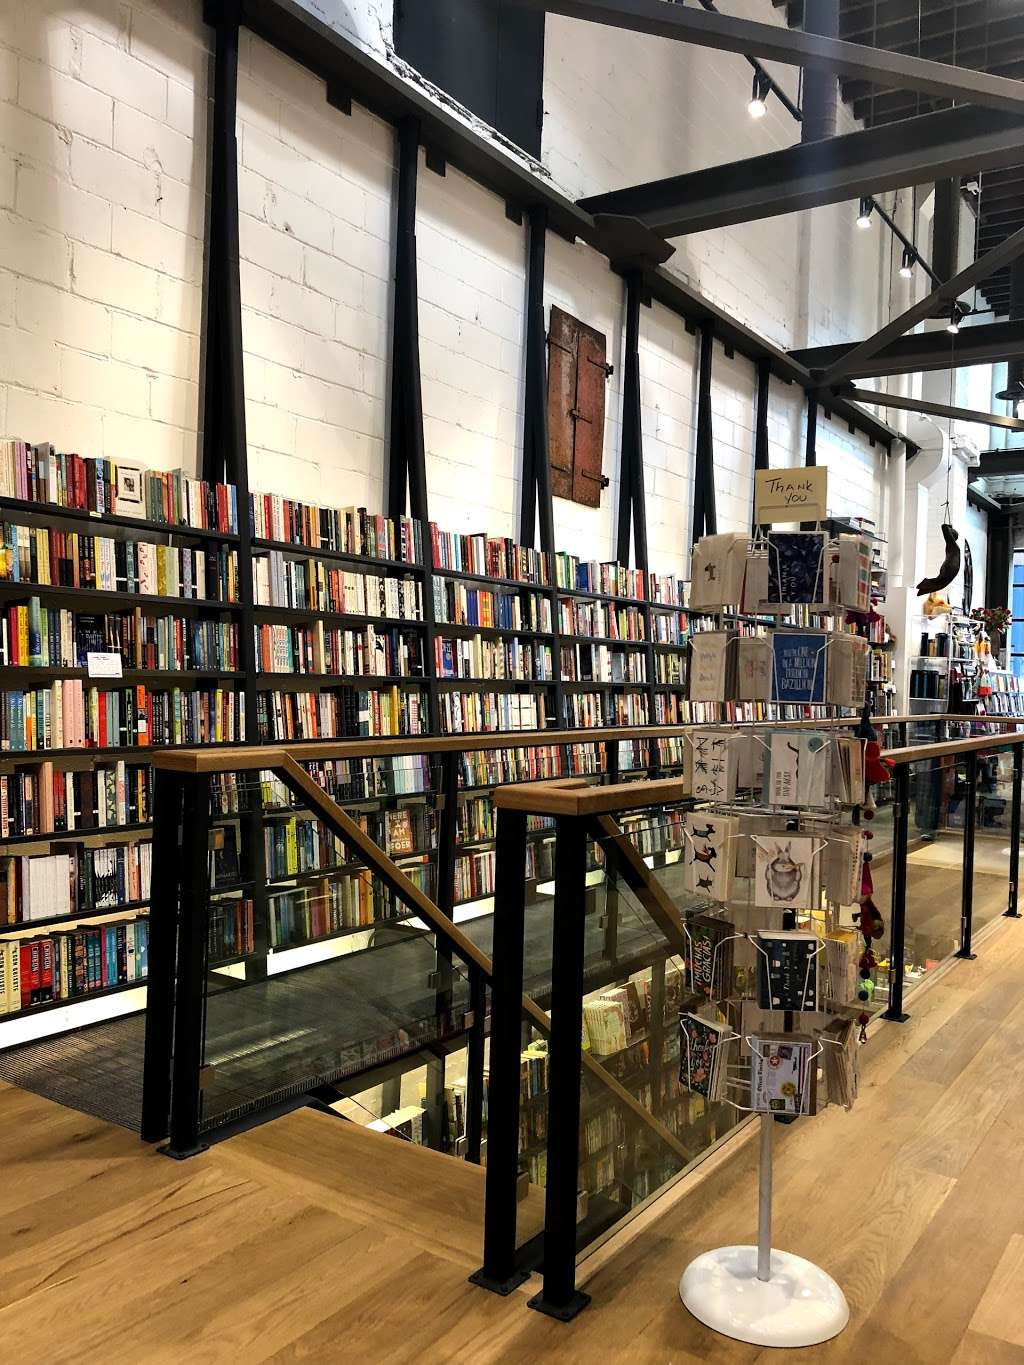 Book Culture LIC - book store  | Photo 8 of 10 | Address: 26-09 Jackson Ave, Long Island City, NY 11101, USA | Phone: (718) 440-3120